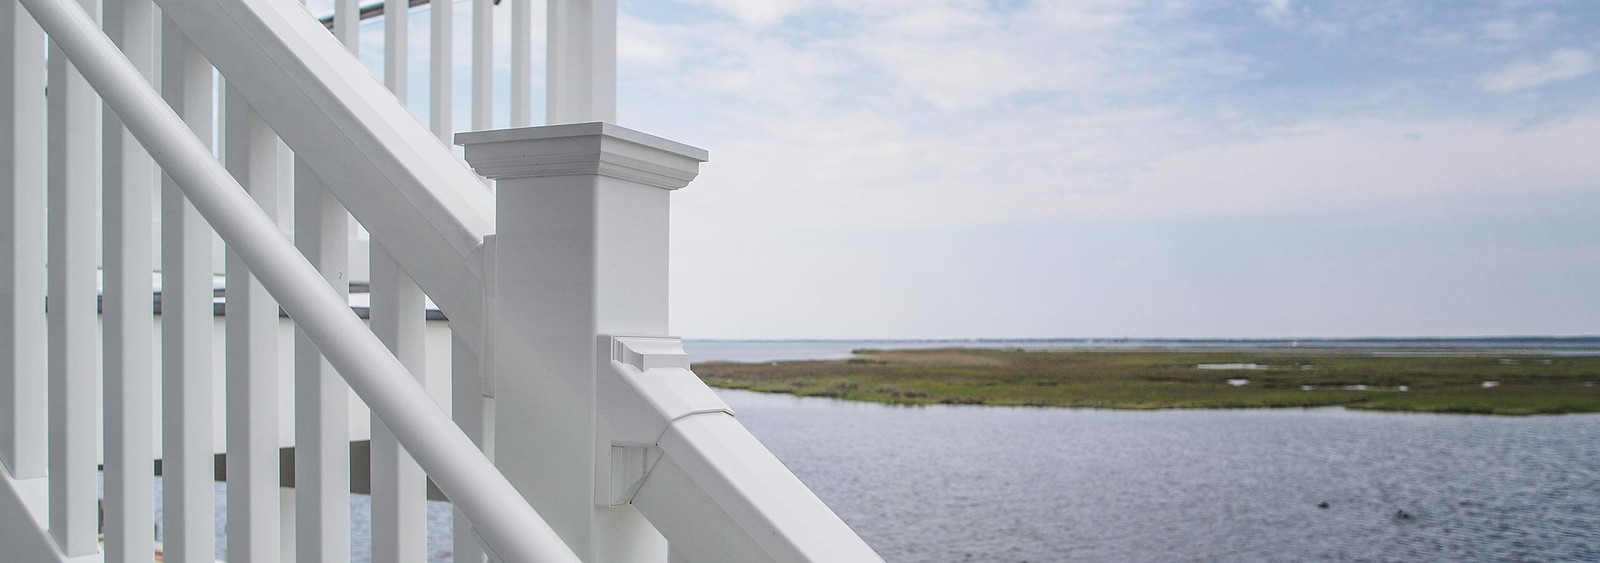 PVC Railing System Overlooking Water